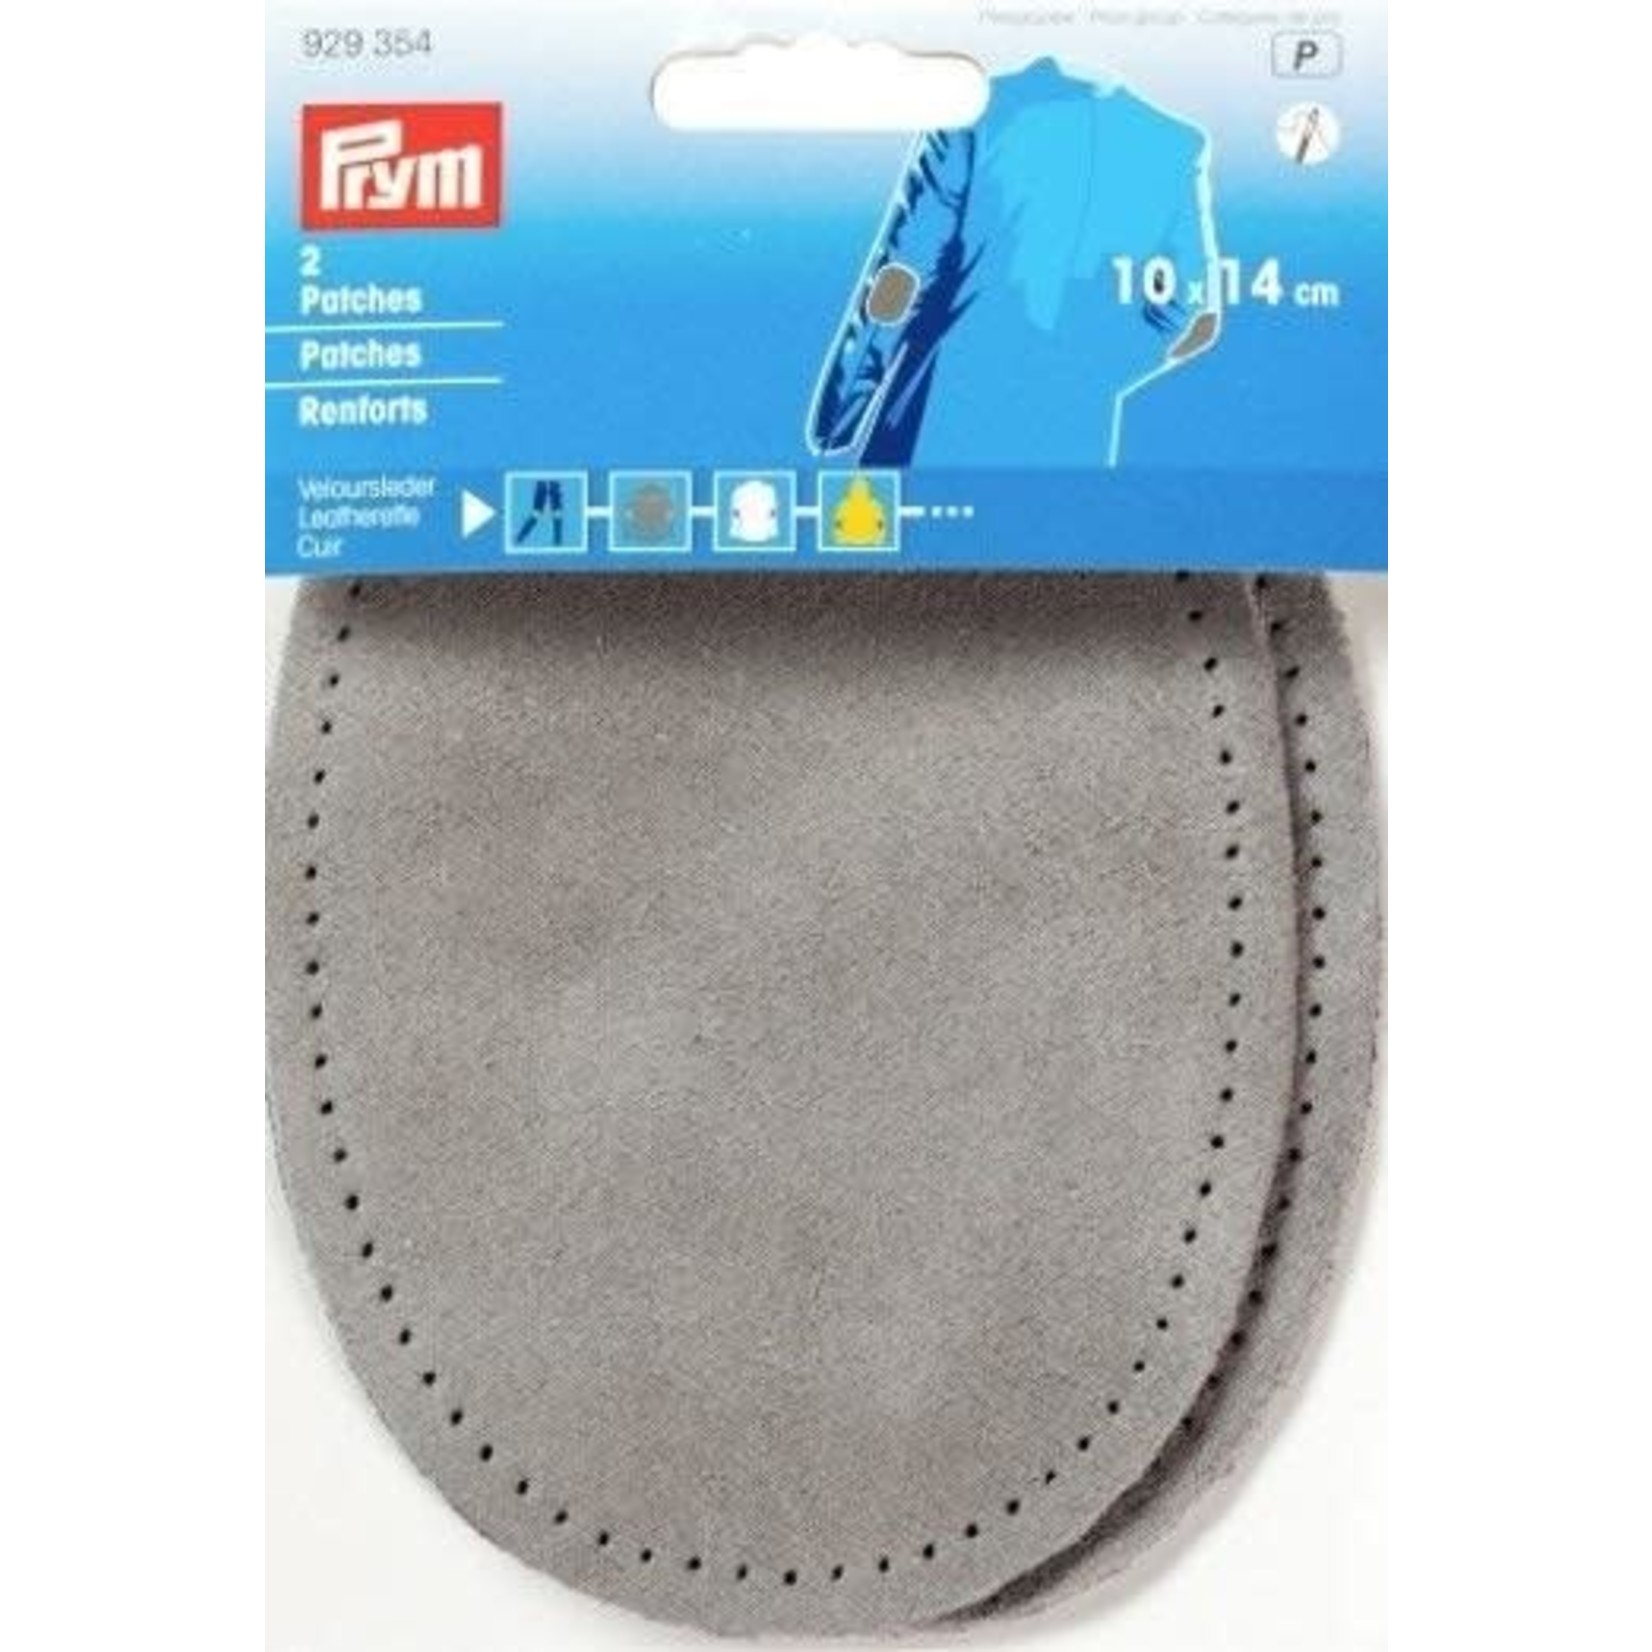 Prym Leather Patches